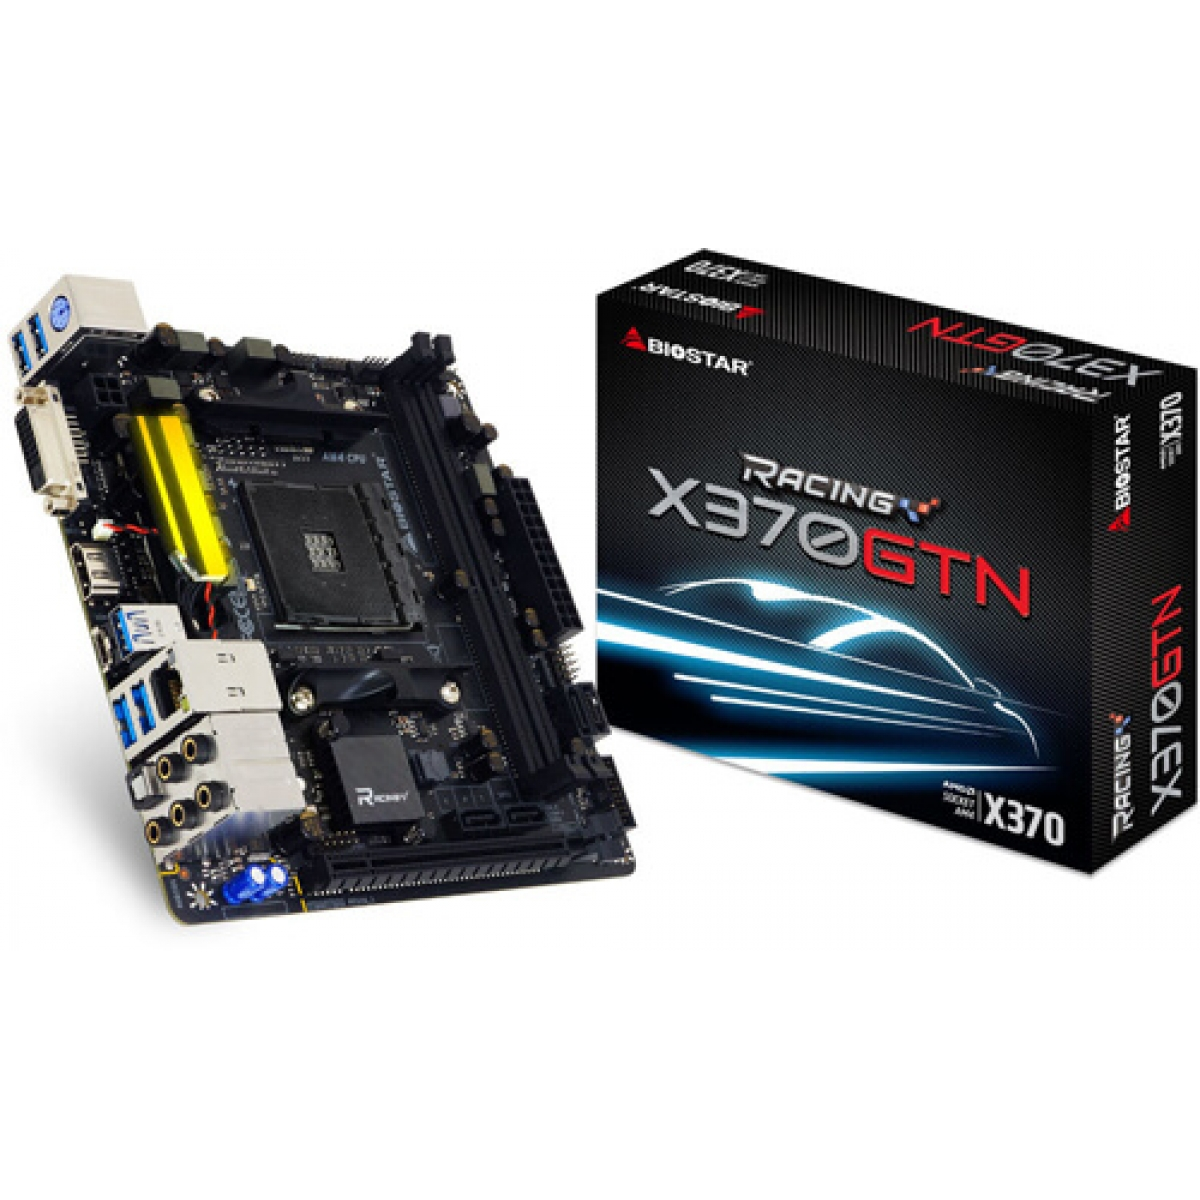 Placa Mãe Biostar Racing X370GTN, Chipset X370, AMD AM4, mITX, DDR4